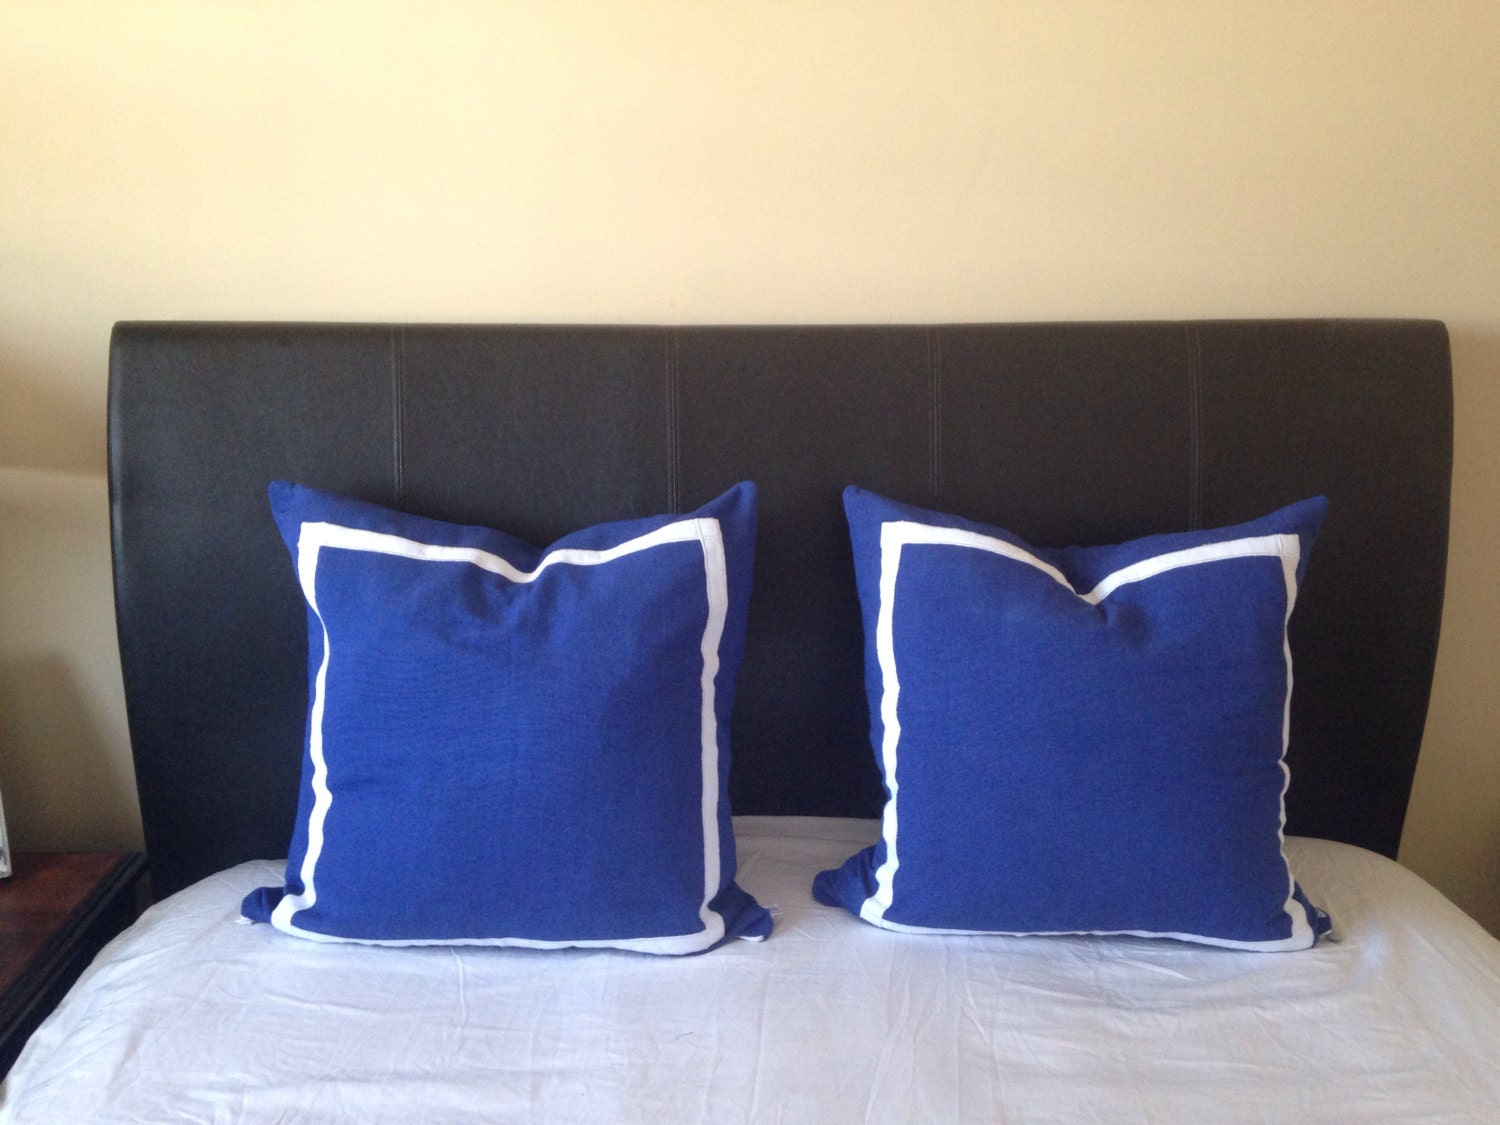 Decorative Pillows For The Bedroom : 30% OFF Trim Pillows Bedroom Pillows Blue throw Pillows